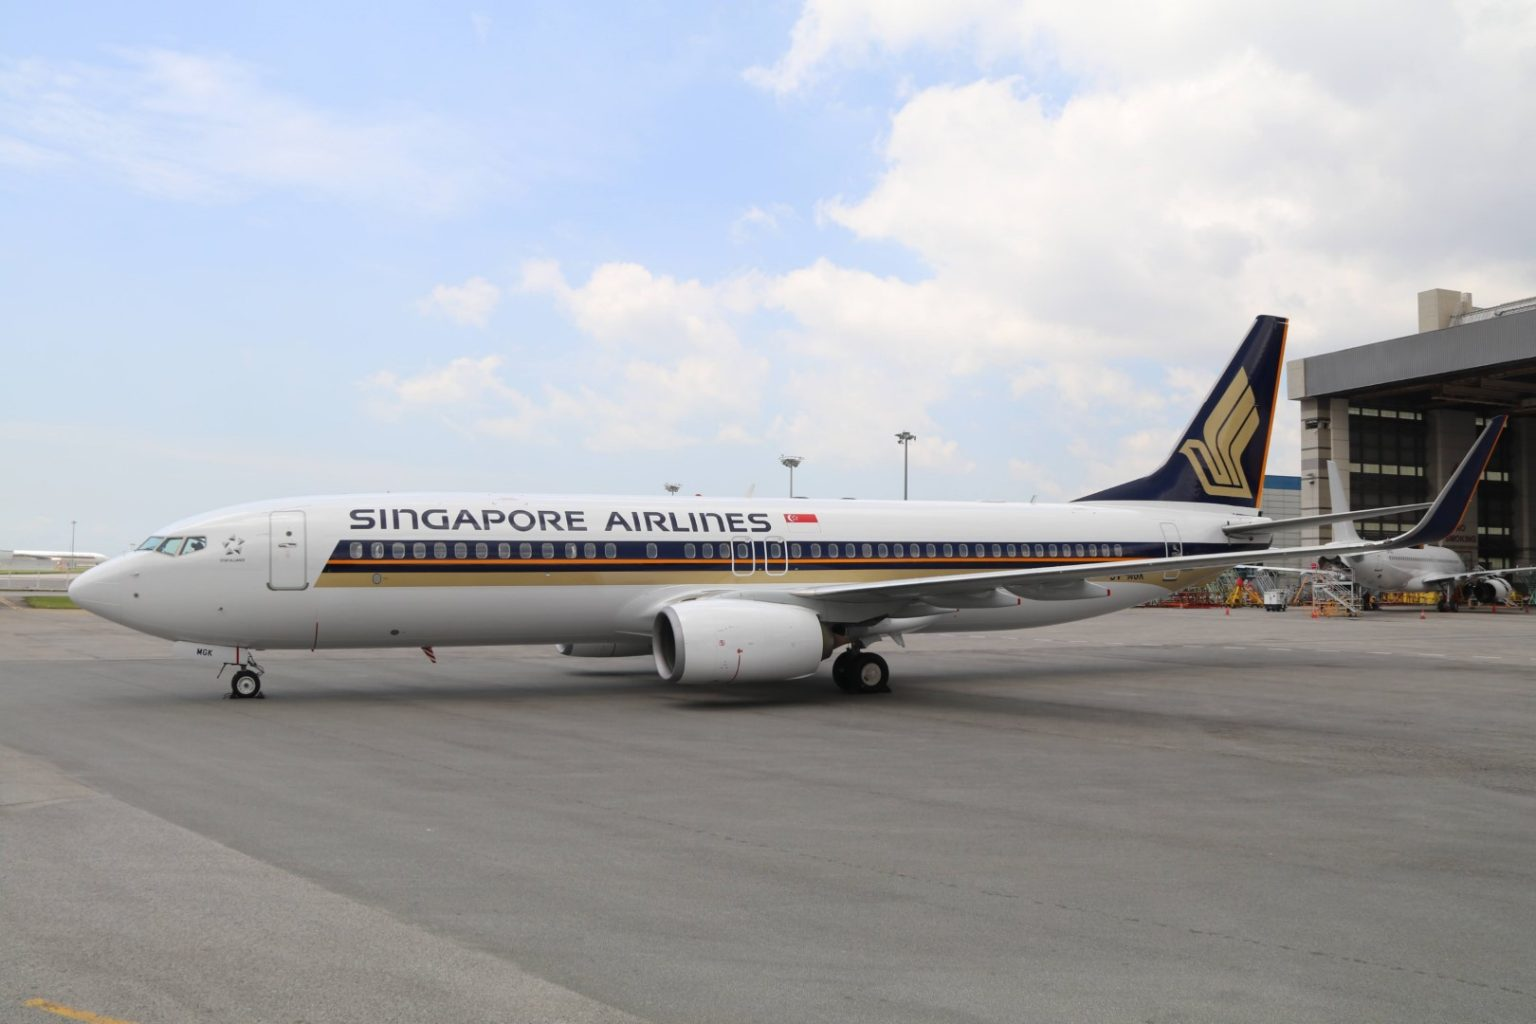 The Evolution Of The Singapore Airlines Fleet